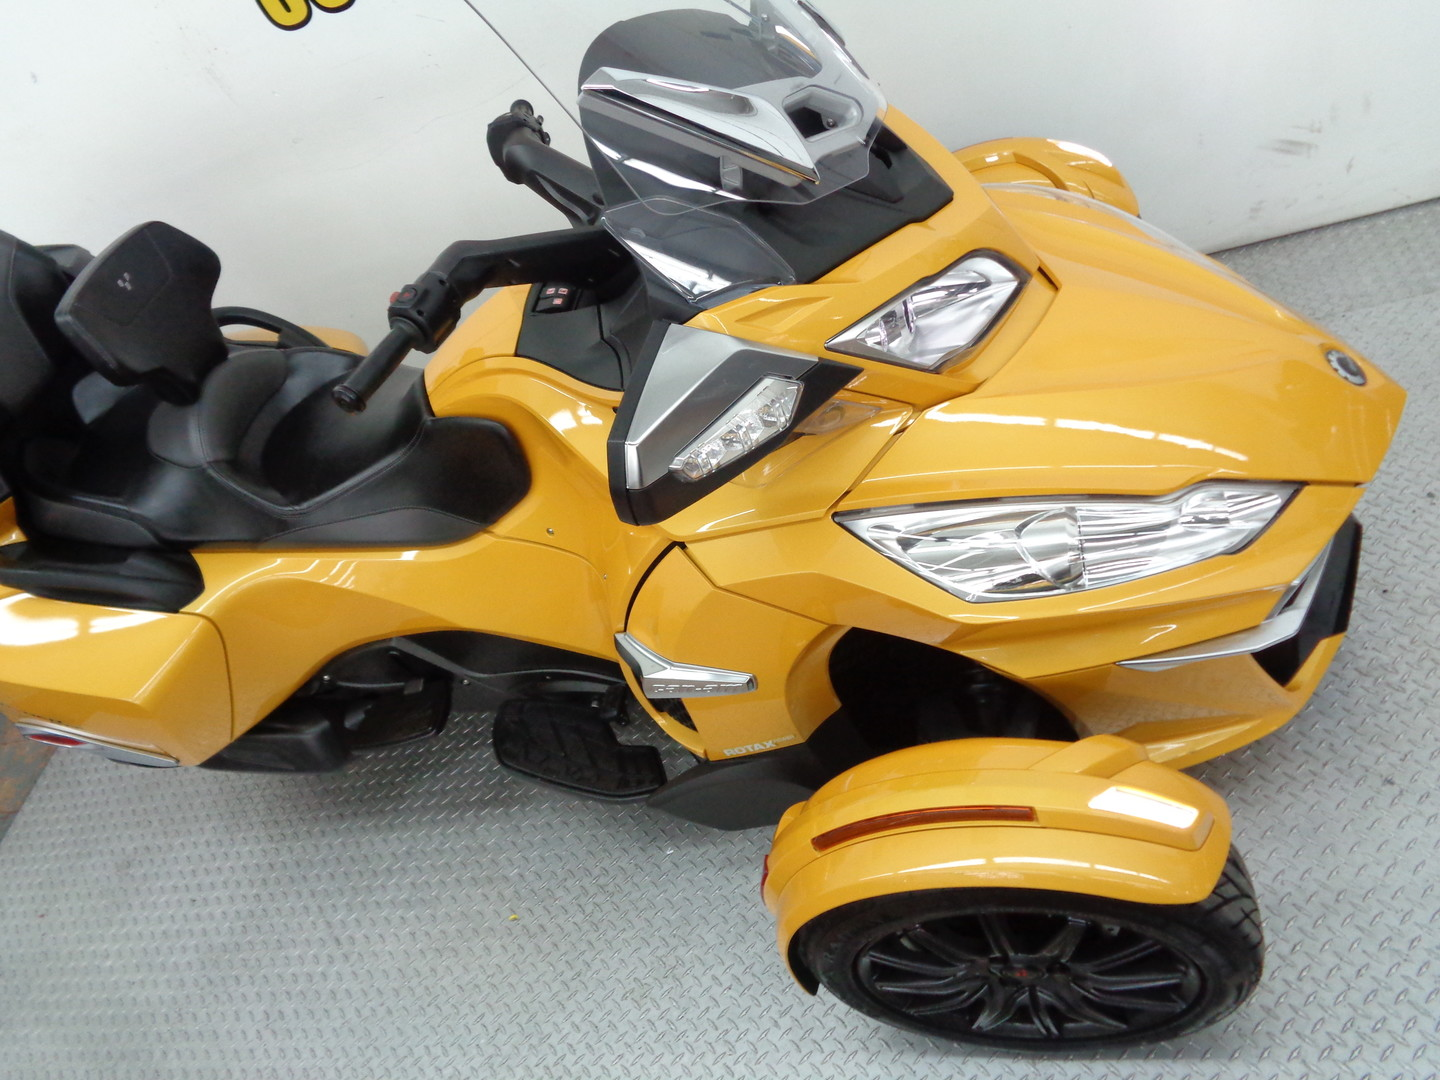 Trade In Value On A Can Am Spyder Upcomingcarshq Com